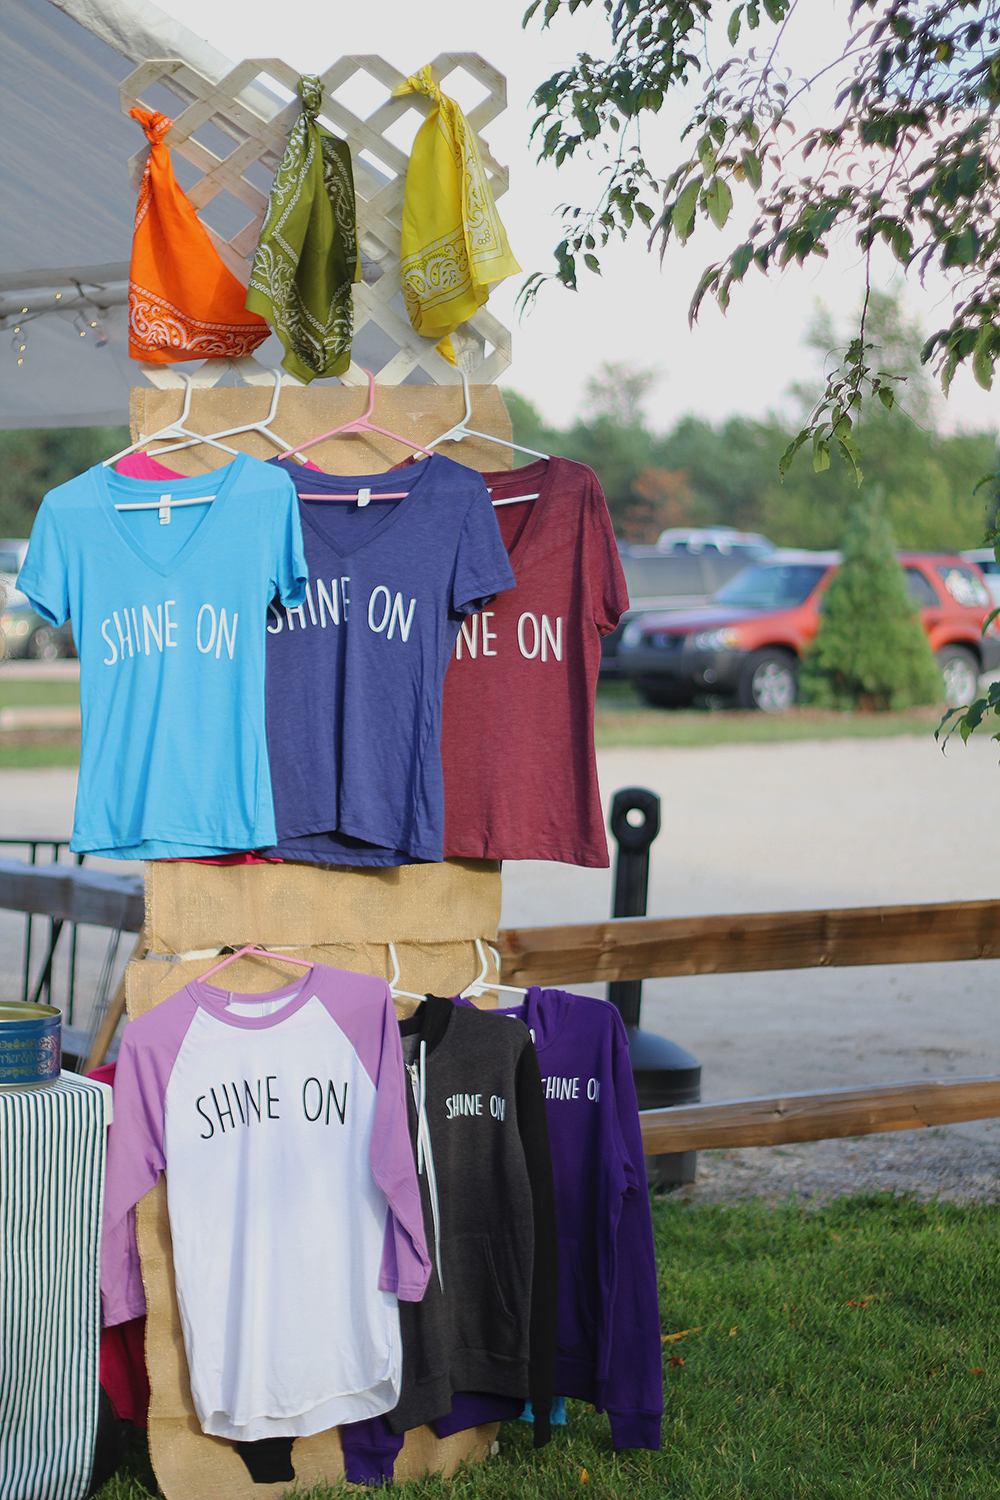 Shine On song Daisy May Erlewine Bernard Earthwork Music Collective T-shirt tshirt sale St. Ambrose. Cellars Isaac Julian Legacy Foundation Benefit Concert Benzie County Frankfort-Elberta High School teen suicide prevention